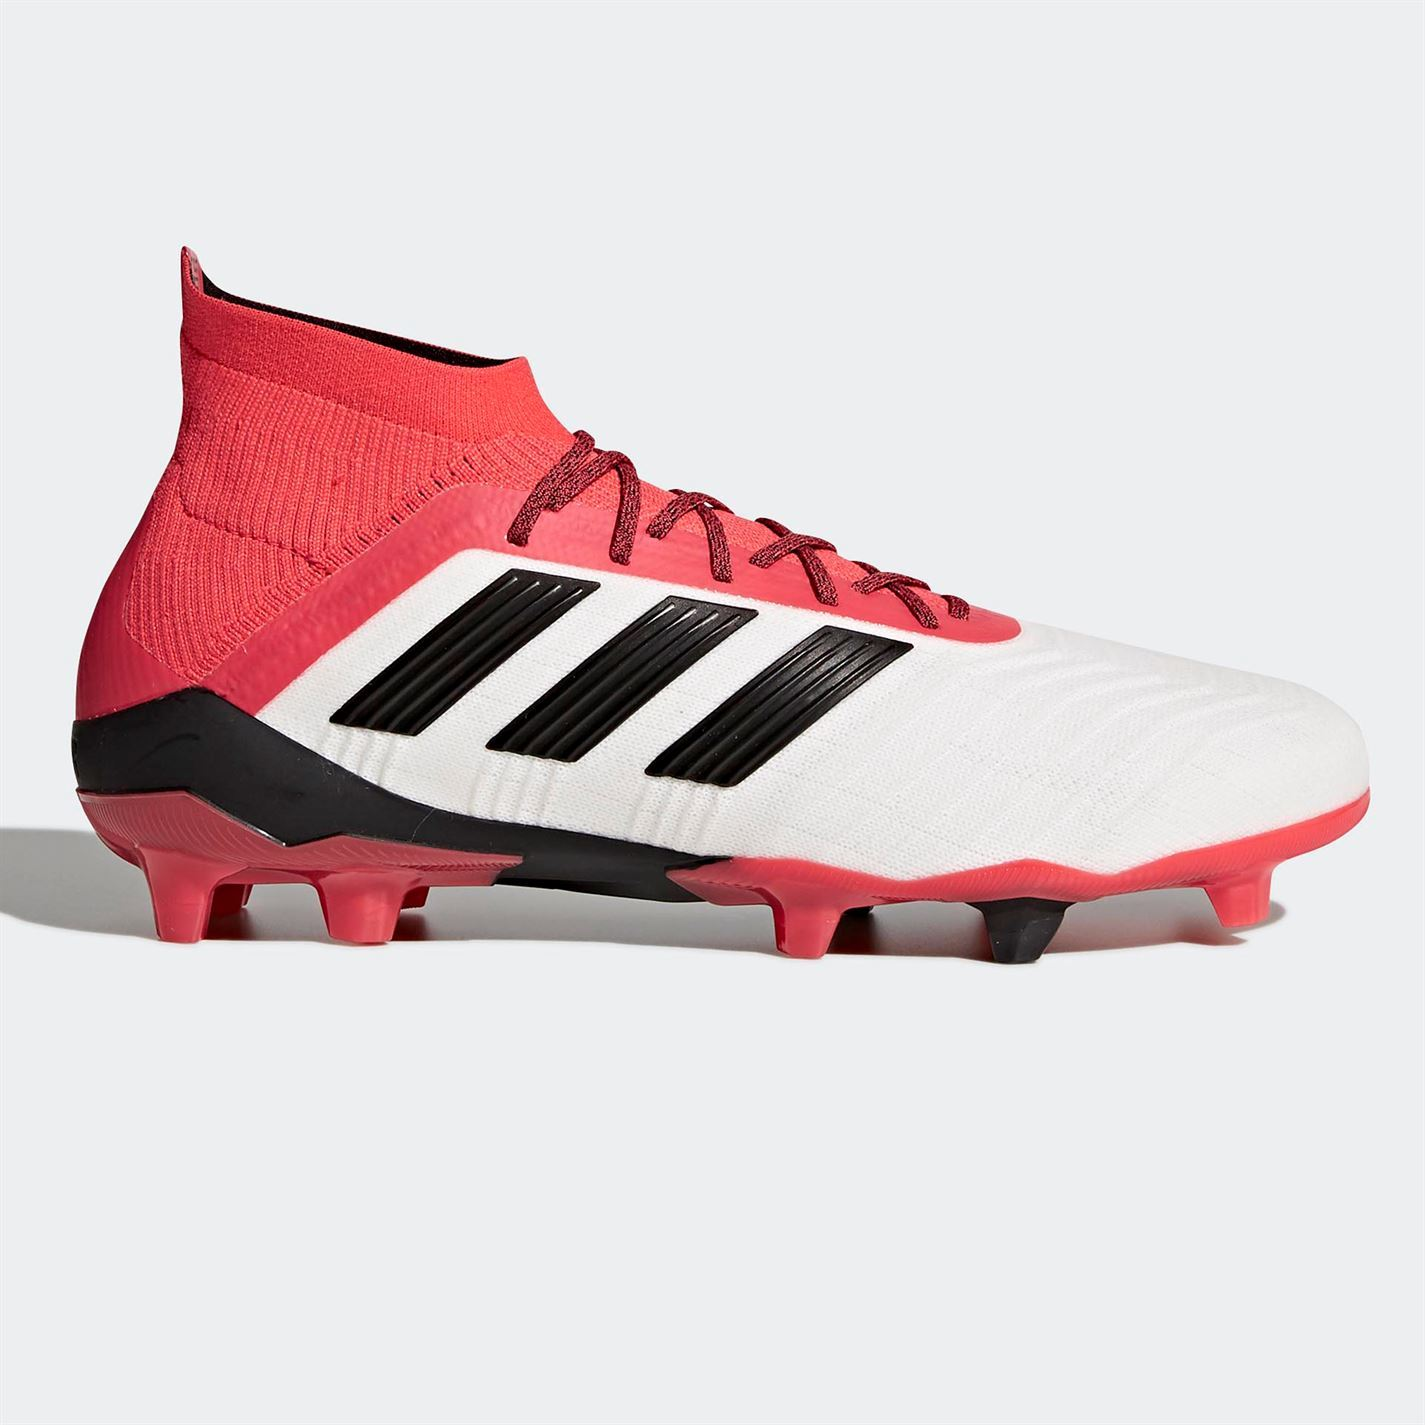 new arrival 0e085 49638 ... adidas Predator 18.1 Firm Ground Football Boots Mens White Red Soccer  Cleats ...